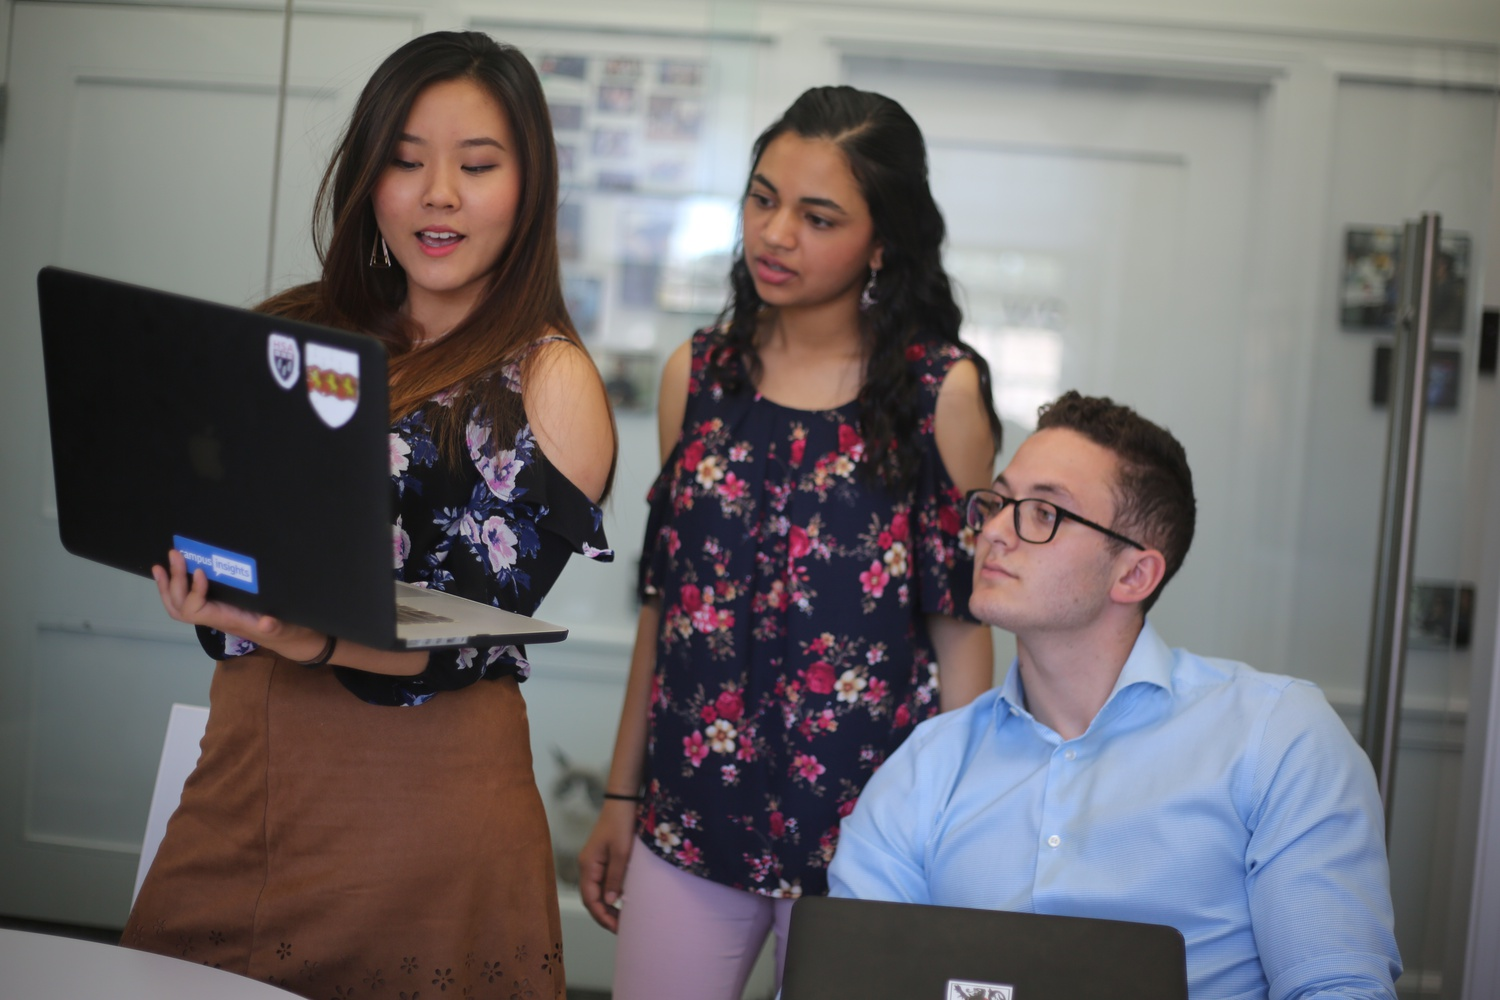 When she learned that the University would be sending its students home, Akanksha Sah scrambled to find a way to sustain the 12 businesses Harvard Student Agencies runs in Harvard Square.